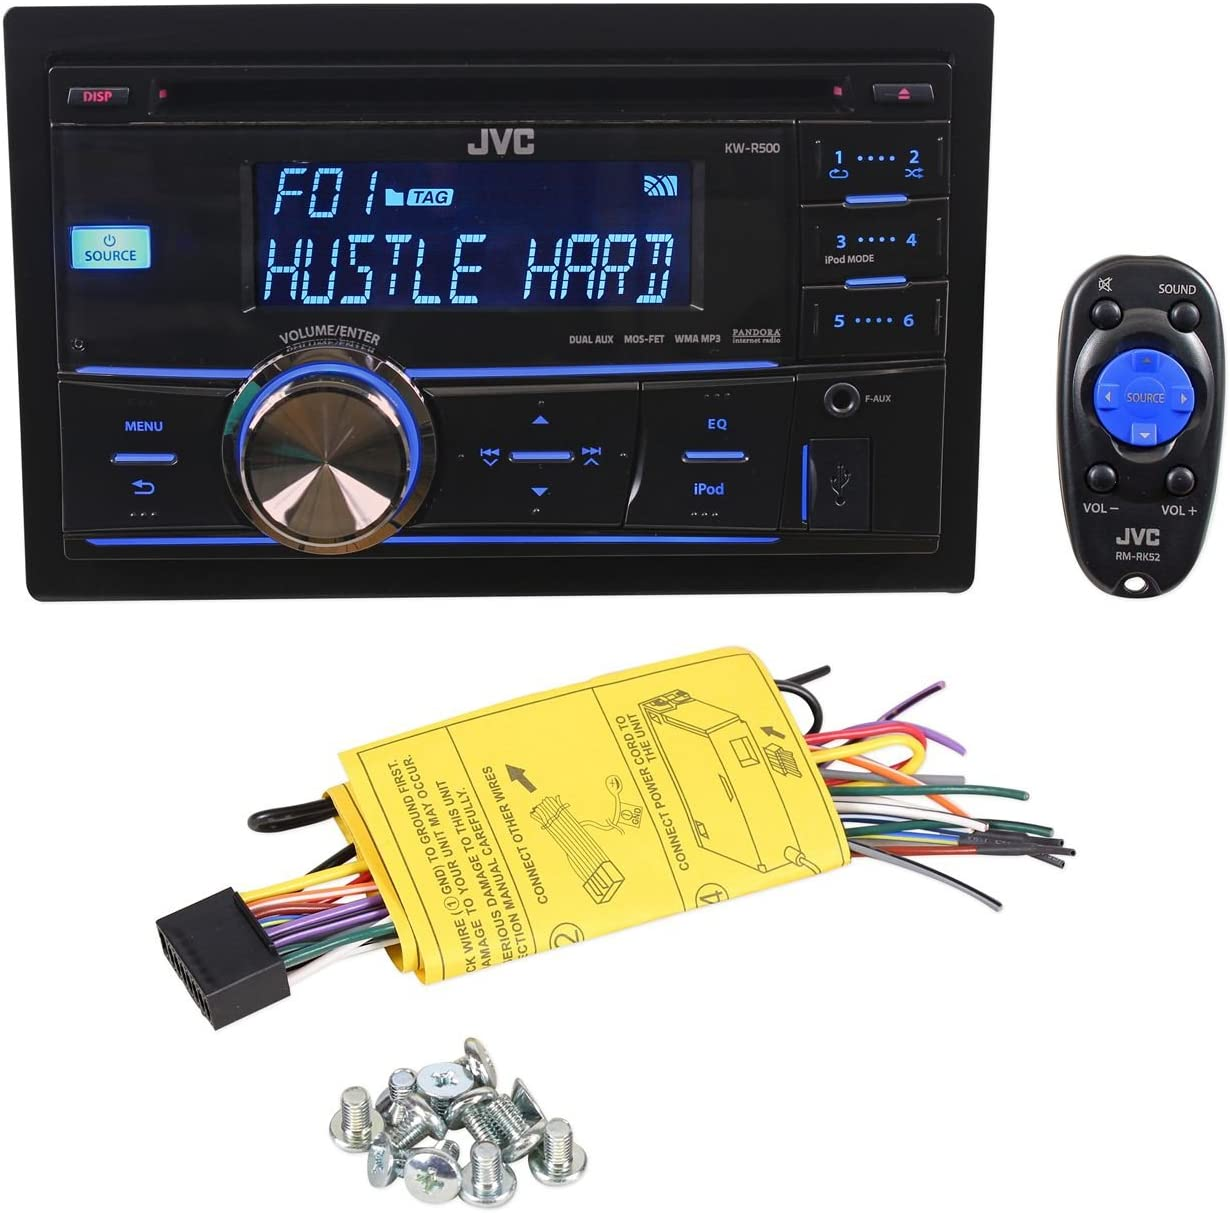 [SCHEMATICS_44OR]  Amazon.com: KW-R500: Car Electronics | Jvc Kw R500 Wiring Harness Diagram |  | Amazon.com